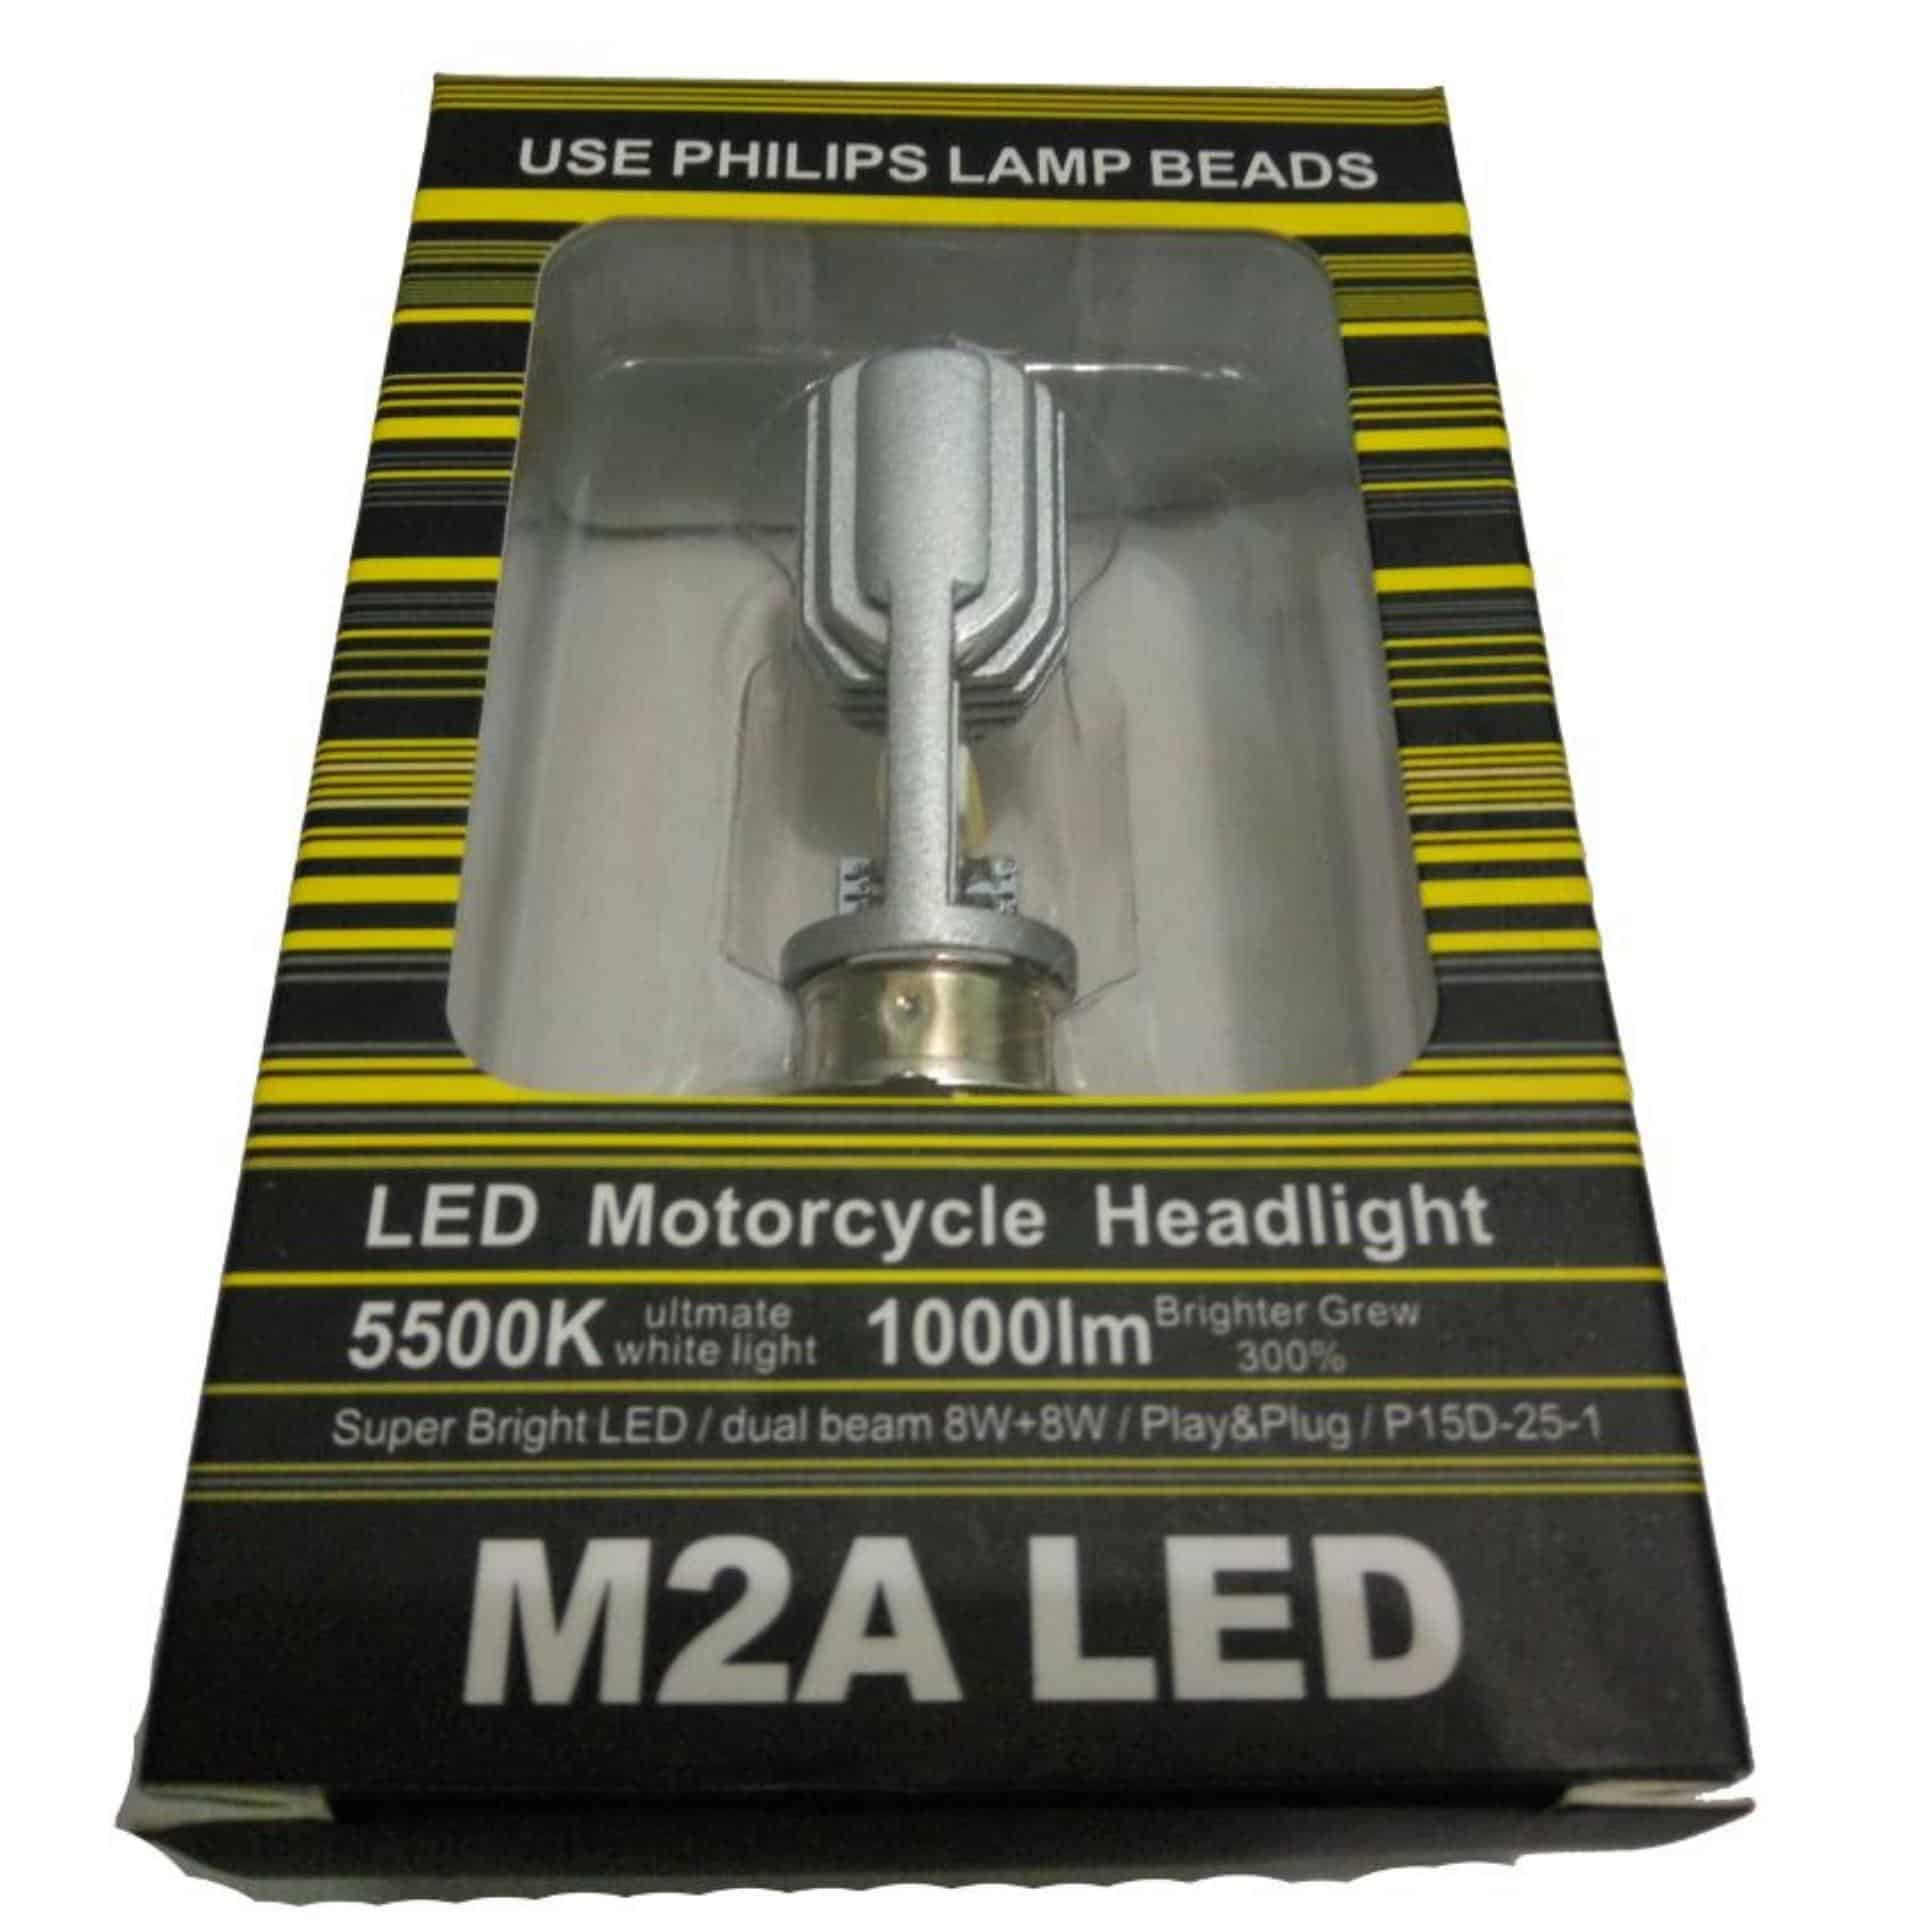 Philips-Lamp-Beads-M2A-LED